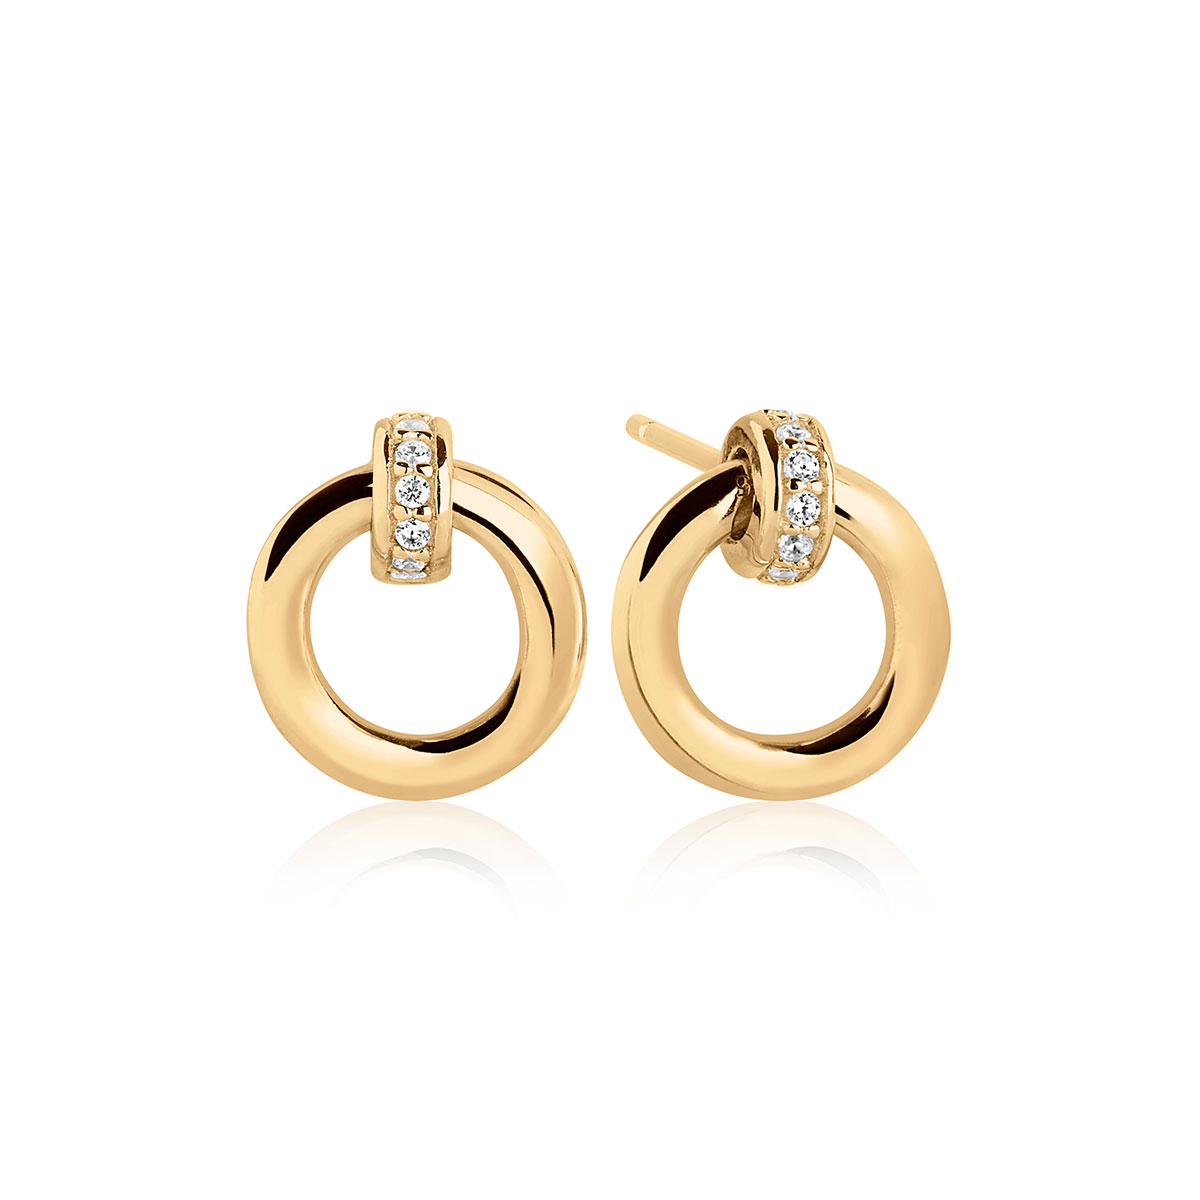 ITRI-PICCOLO-EARRINGS_SJ-E0057-CZ-YG